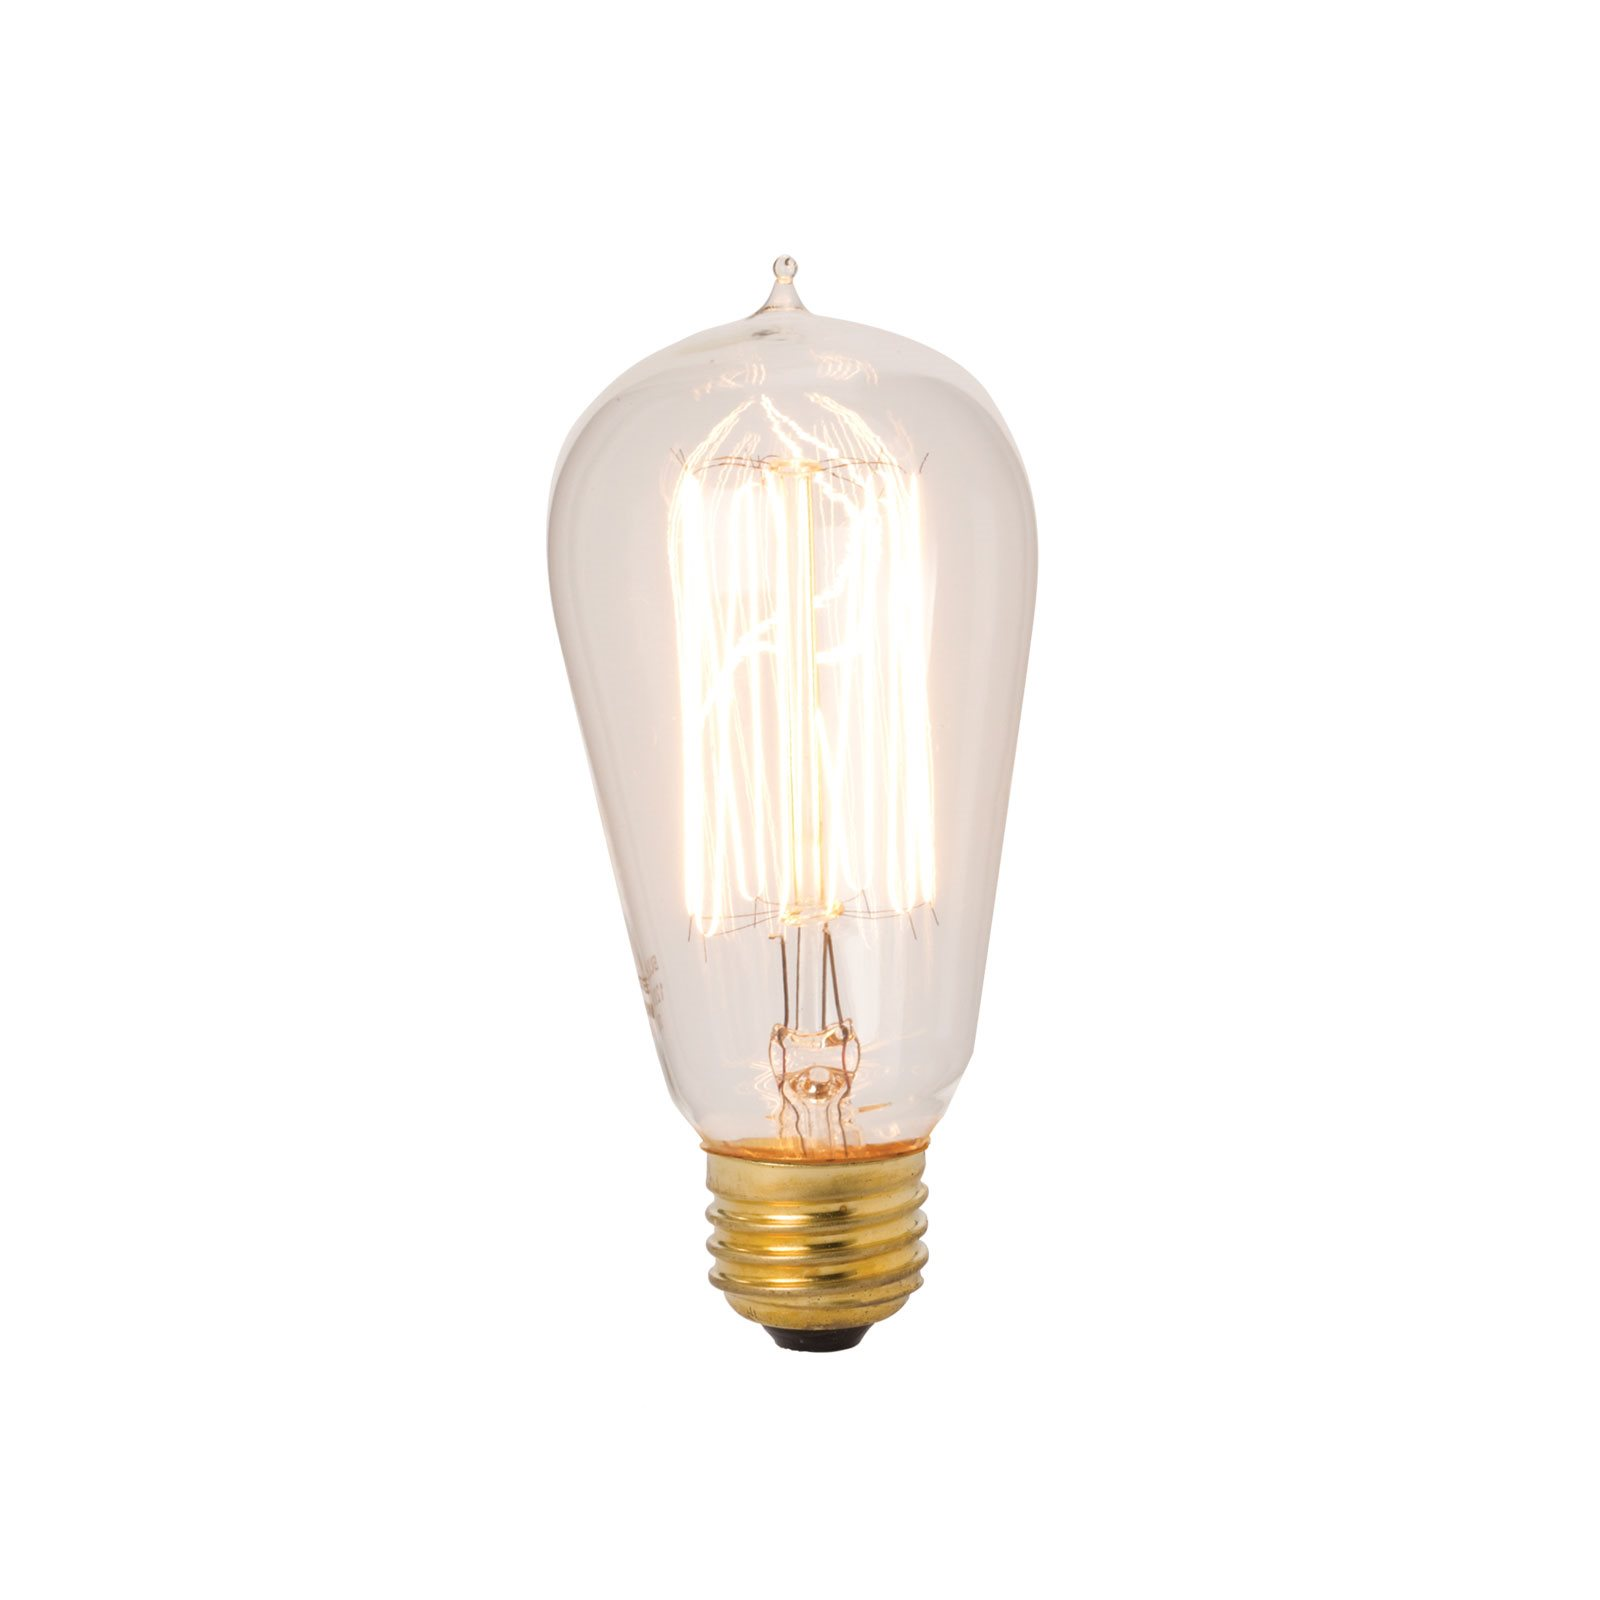 dimond 285001 exposed filament bulb lzs 285001. Black Bedroom Furniture Sets. Home Design Ideas